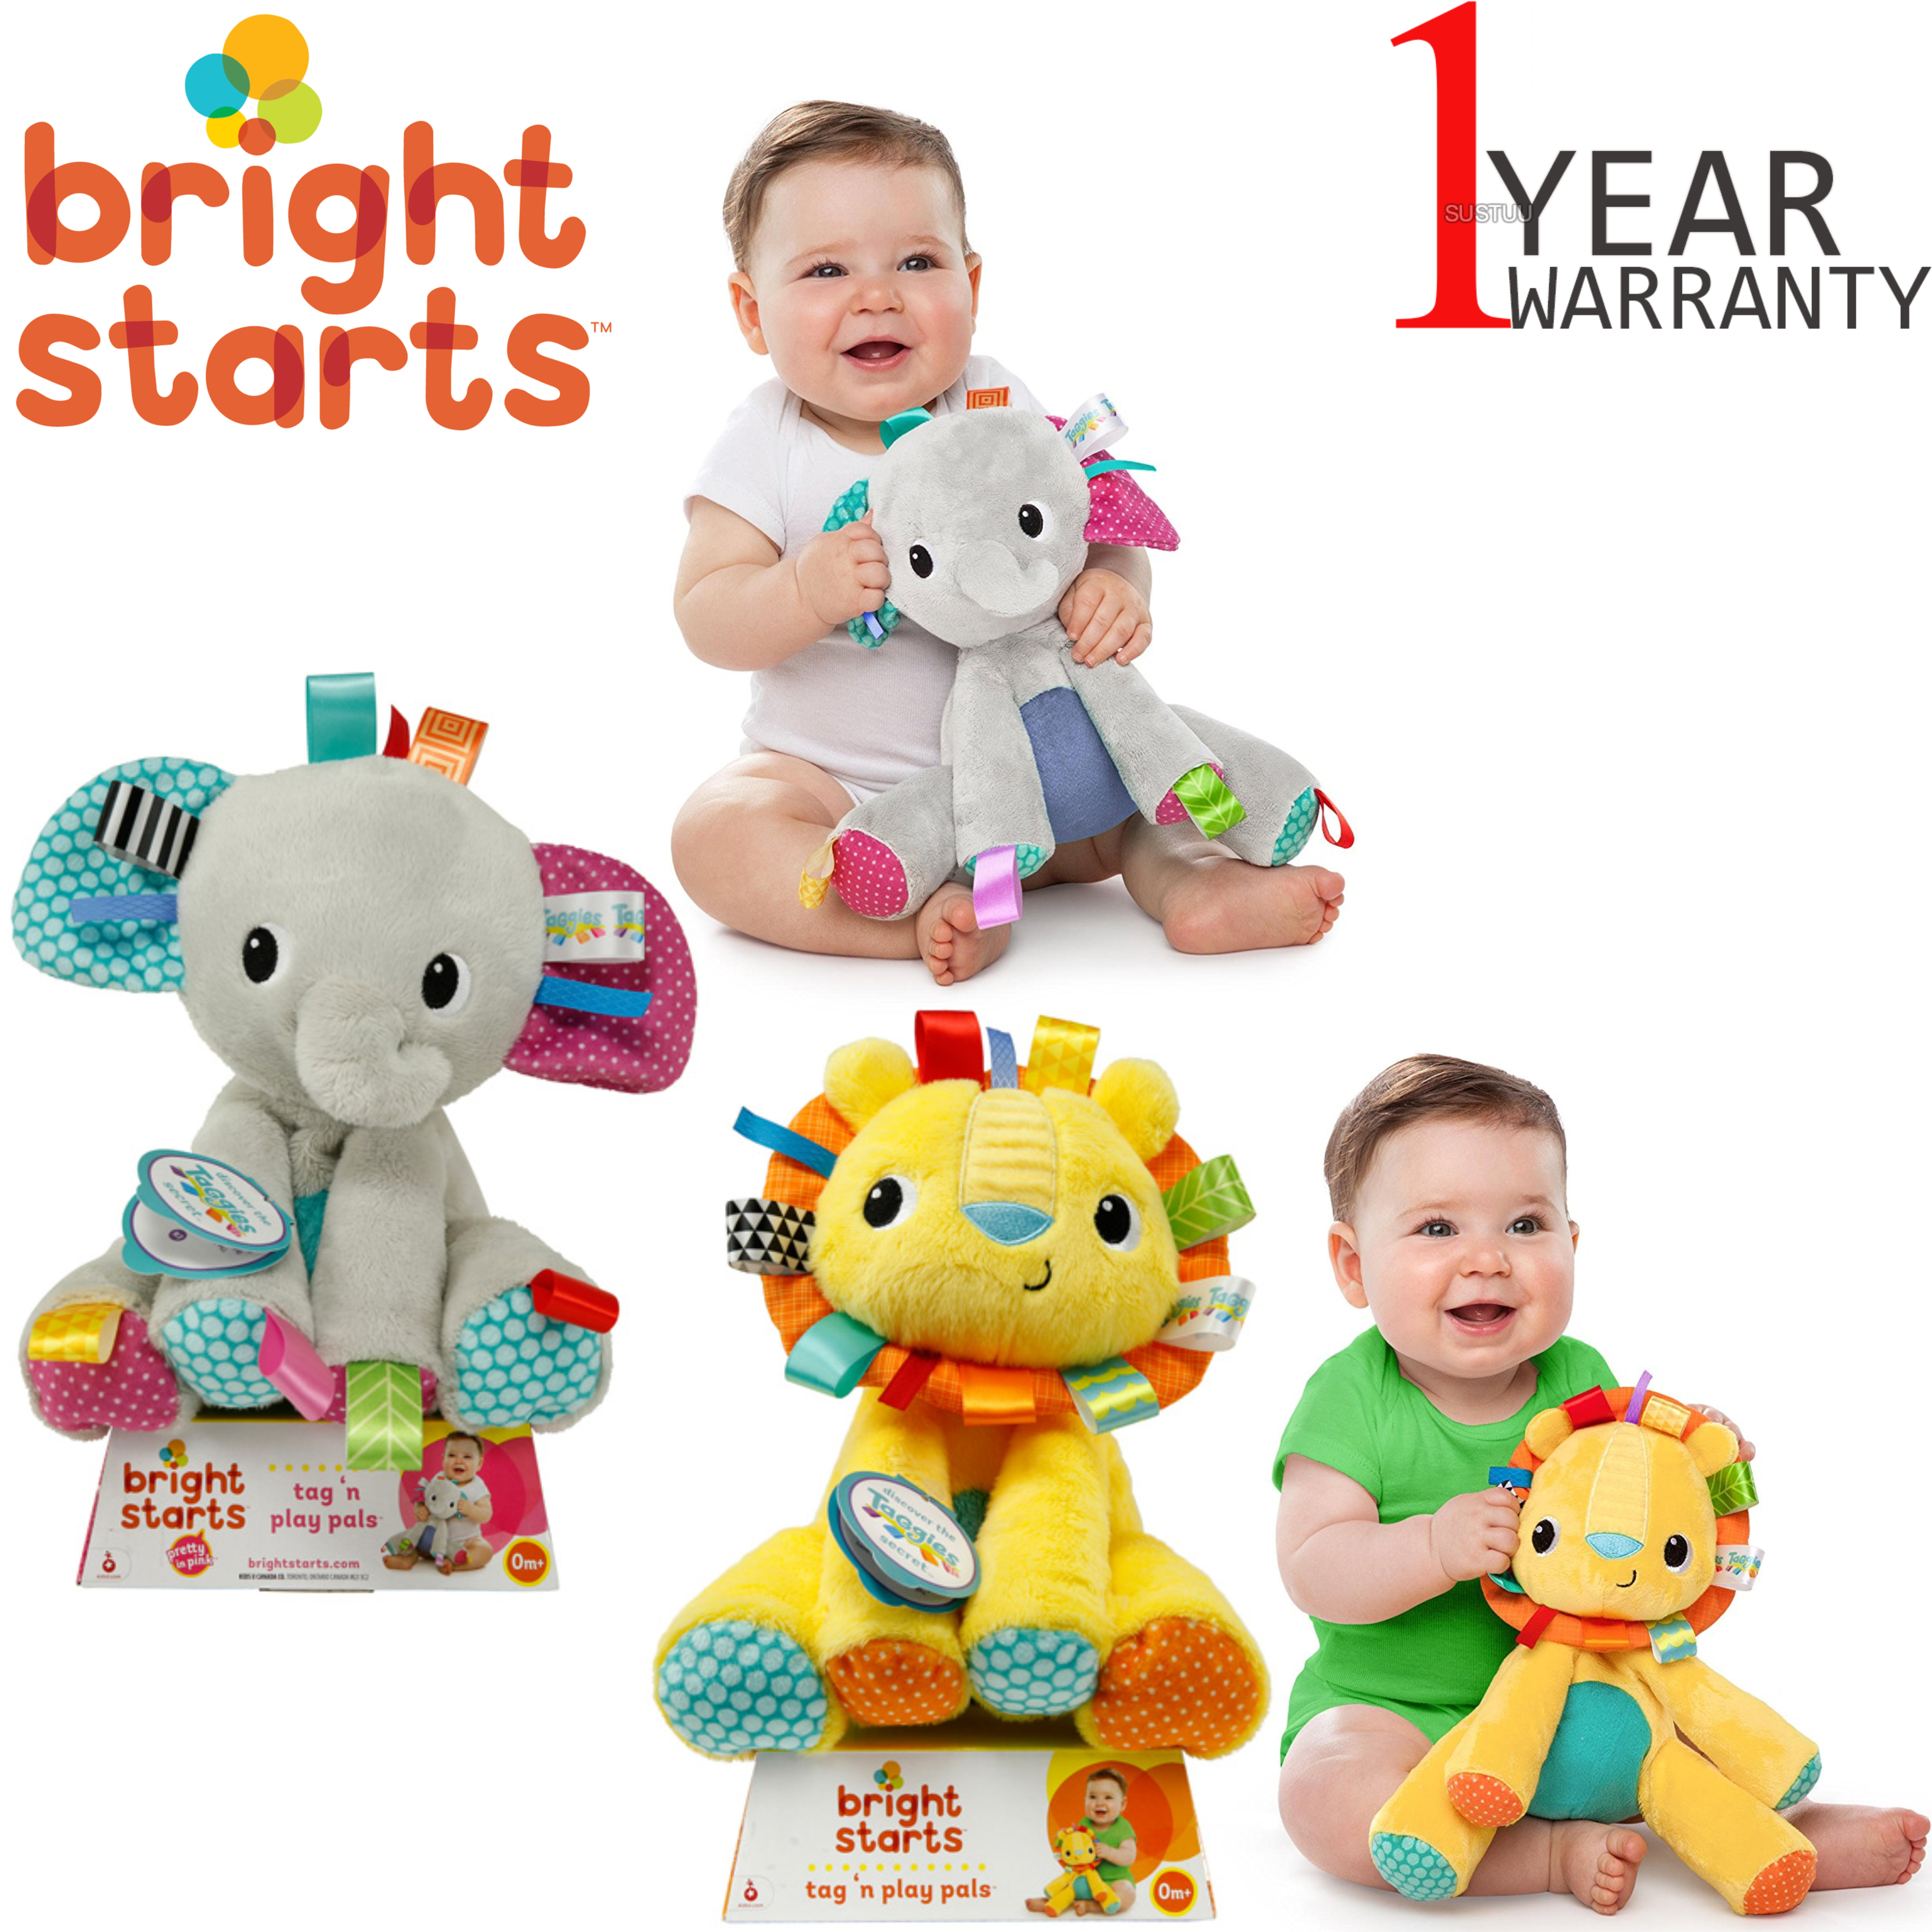 Bright Starts Tag 'n Play Pals Assorted Characters | Kids Activity Toy With Sounds